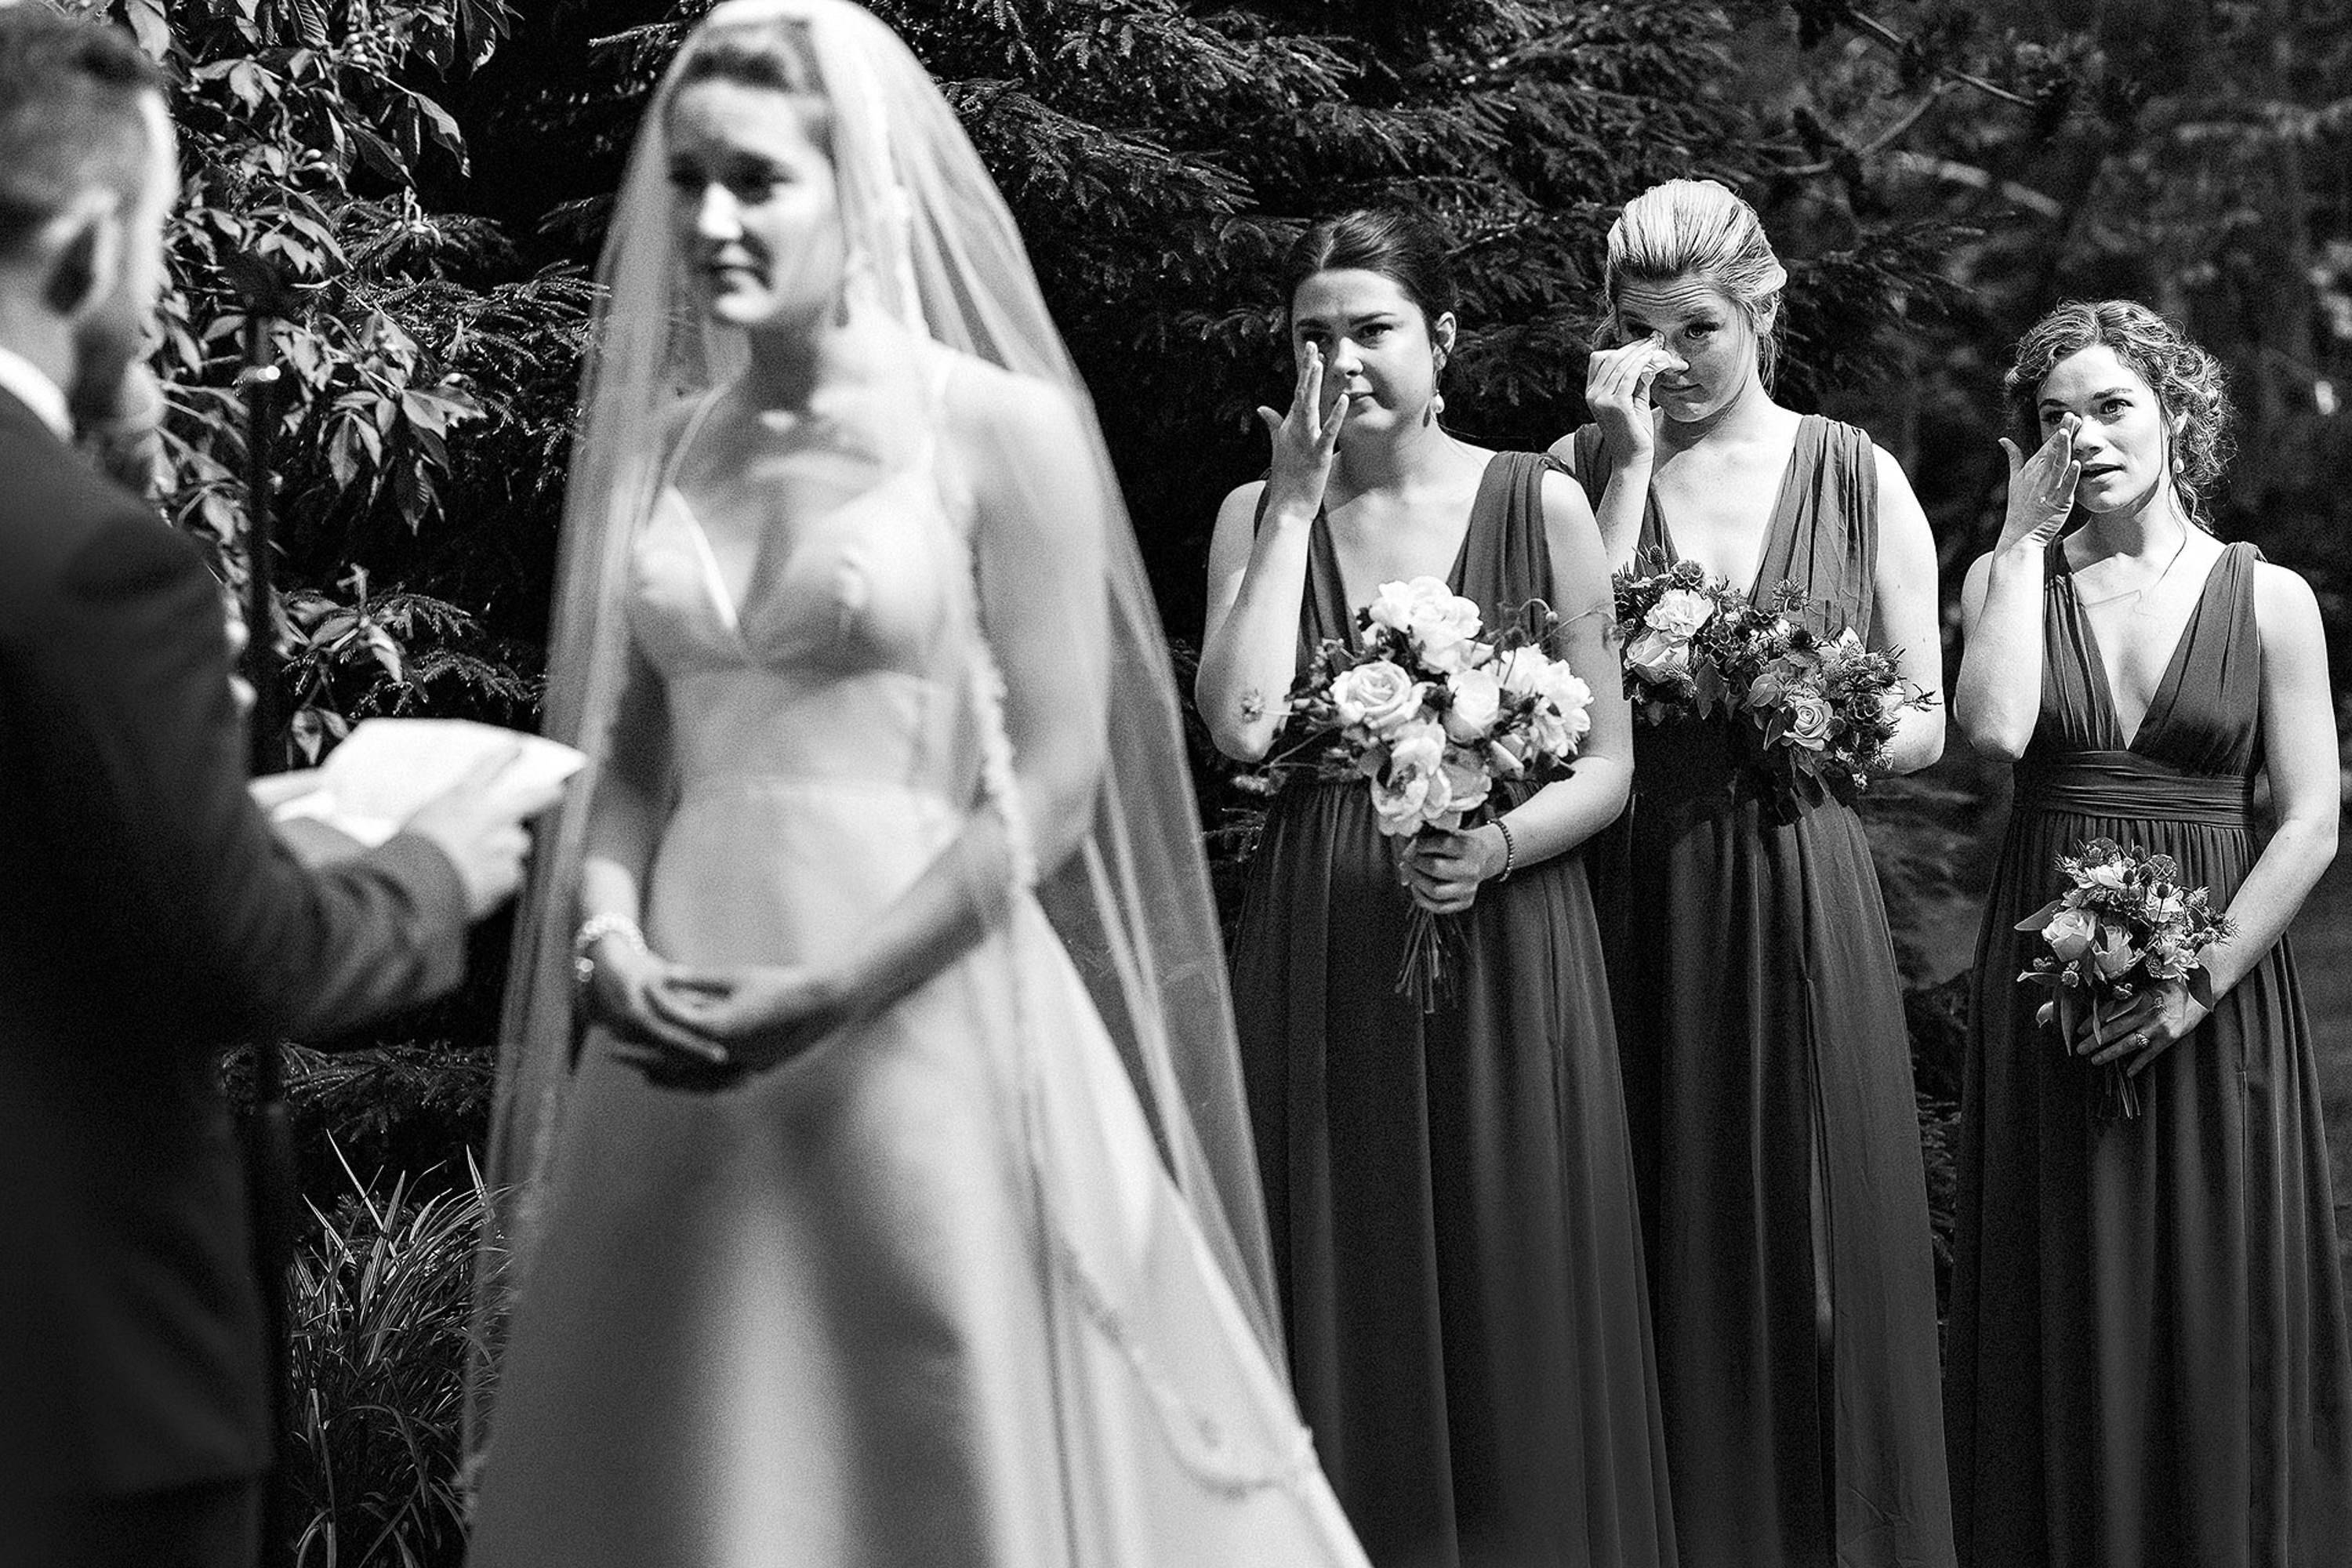 Bridesmaids wipe tears during ceremony - photo by Alex Paul Photography